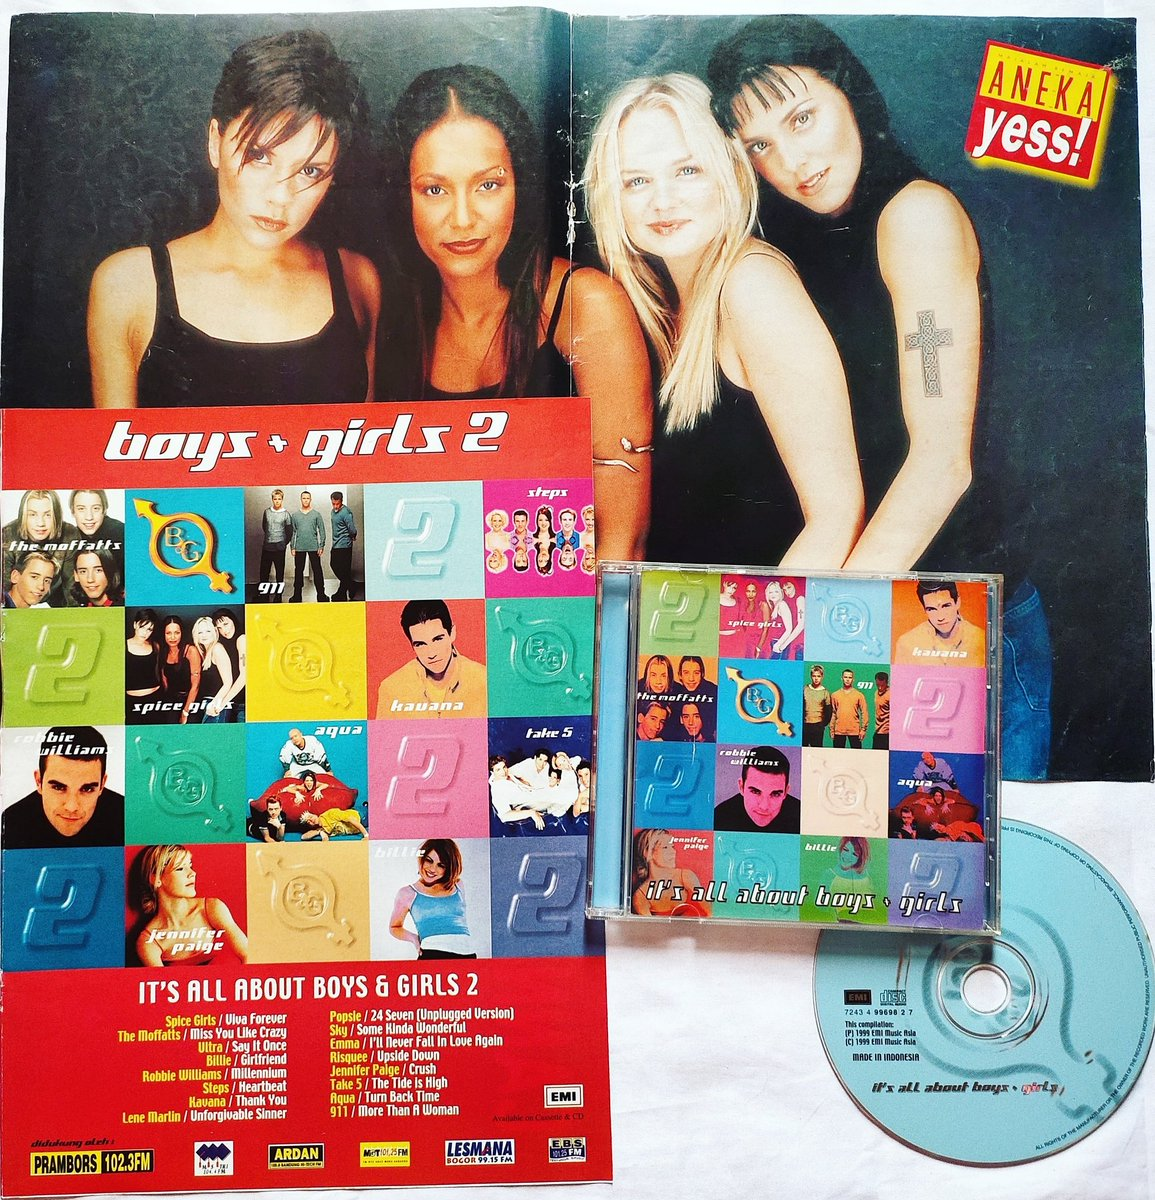 """Boys & Girls 2"" is one of the famous Compilation CD in the Southeast Asia back in 1999,  @spicegirls is included in this compilation with their Hit Single ""Viva Forever"". #spicegirls https://t.co/X6PSyvruRU"